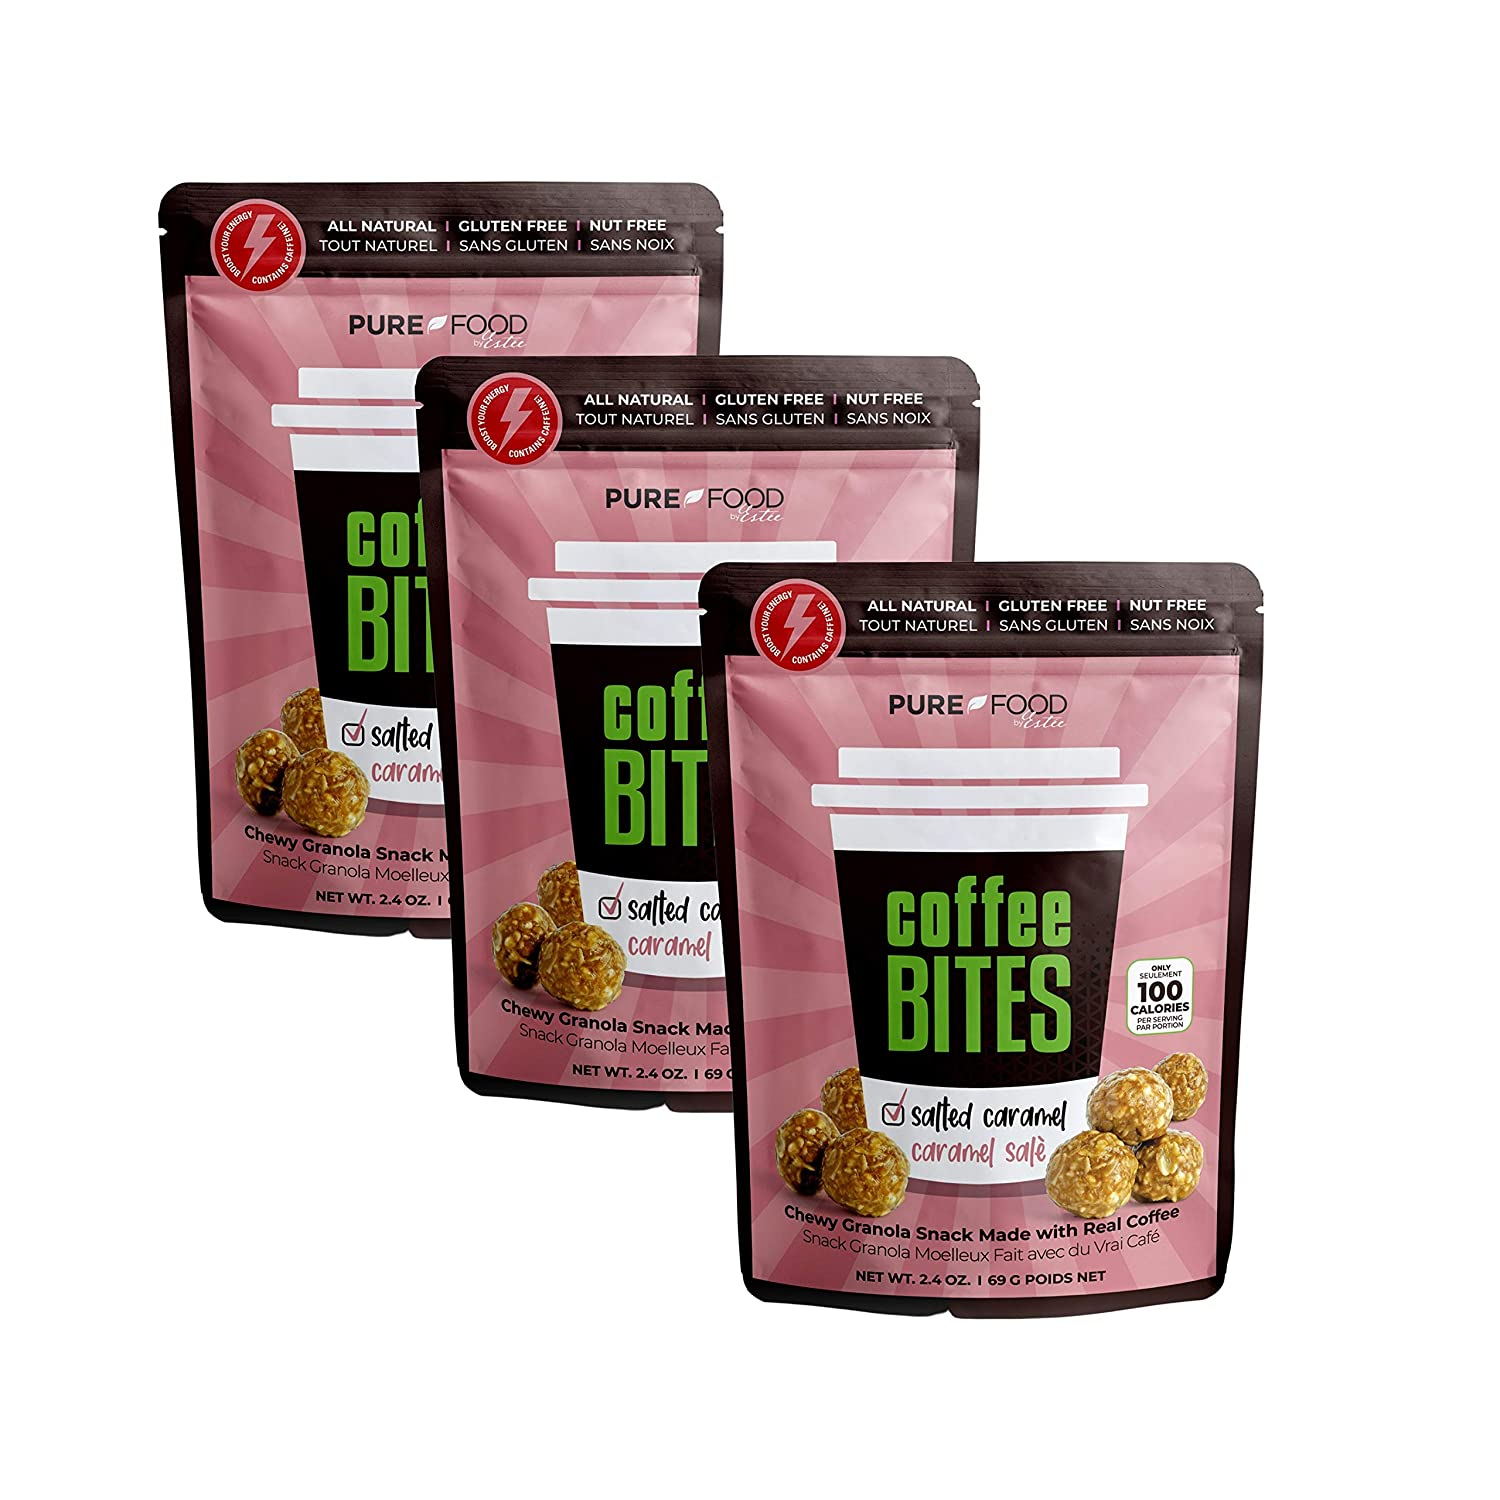 MADE GOOD Alternative - SALTED CARAMEL - Granola Cereal Bites Organic Chewy Coffee Granola Bars Vegan Made with Healthy, Crispy, Allergy Free Snacks Best for School and Office Lunches (3 Bags, 2.4 Oz. Each) by Pure Food by Estee